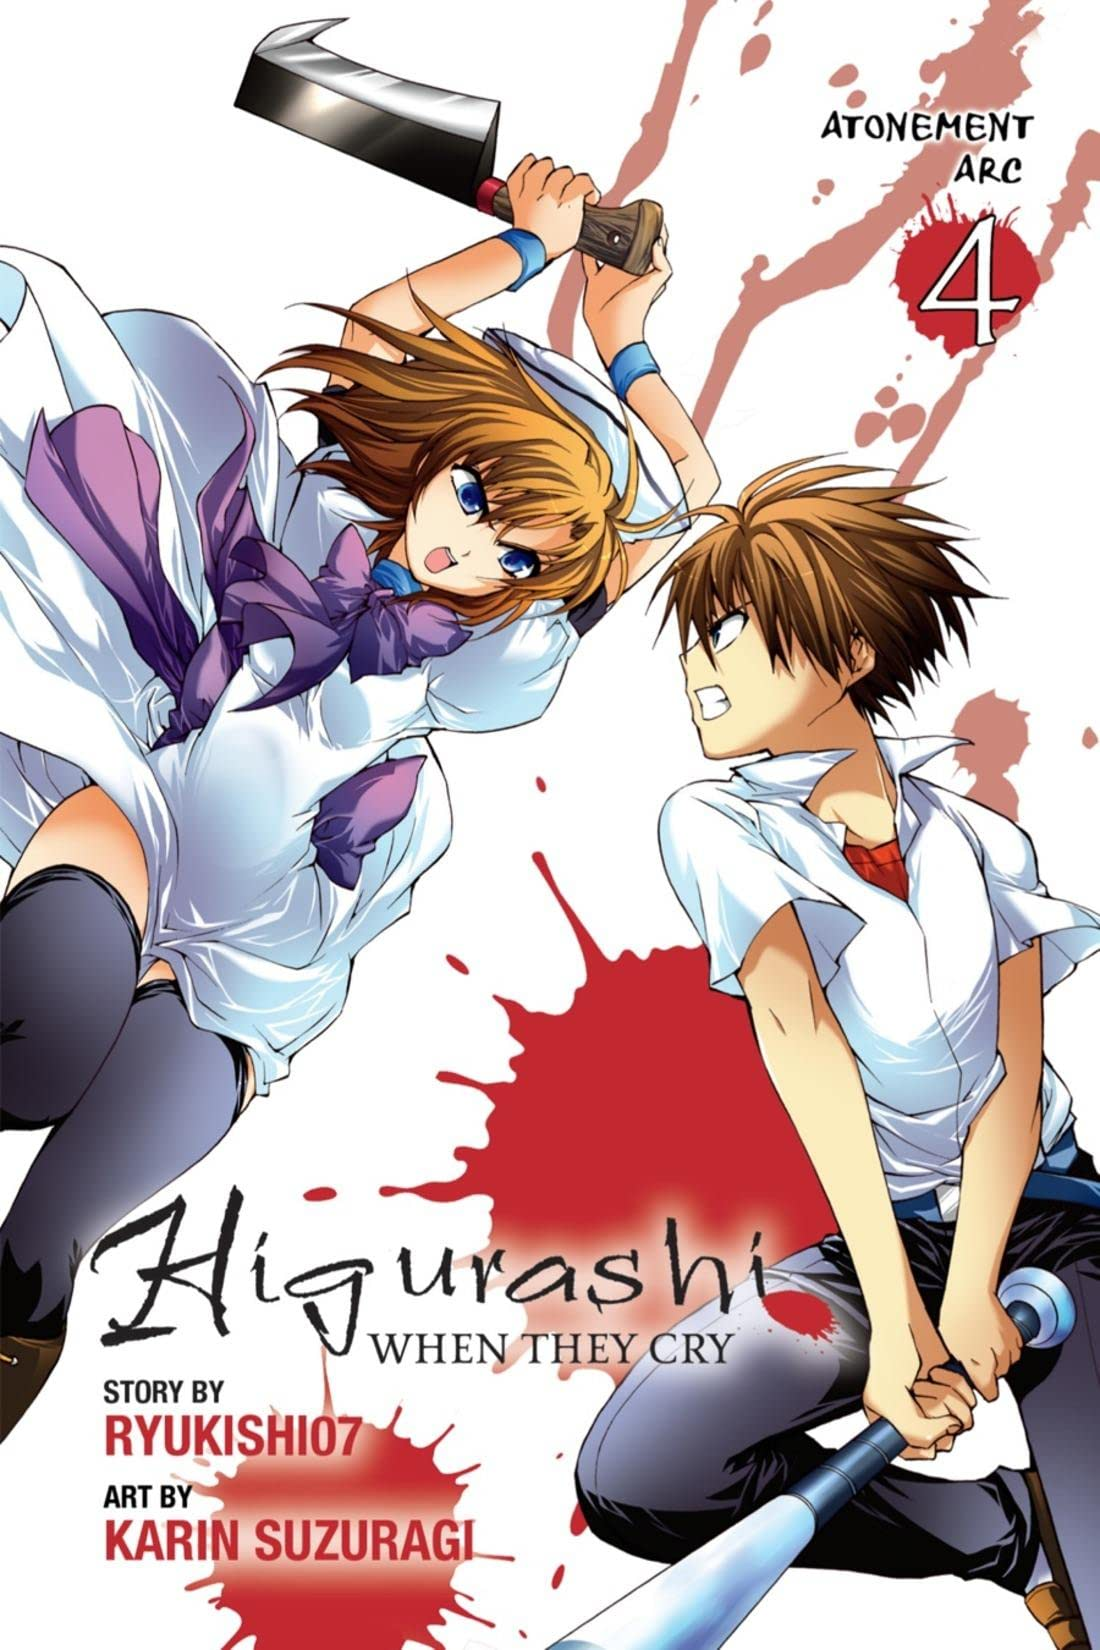 Higurashi When They Cry Vol. 4: Atonement Arc